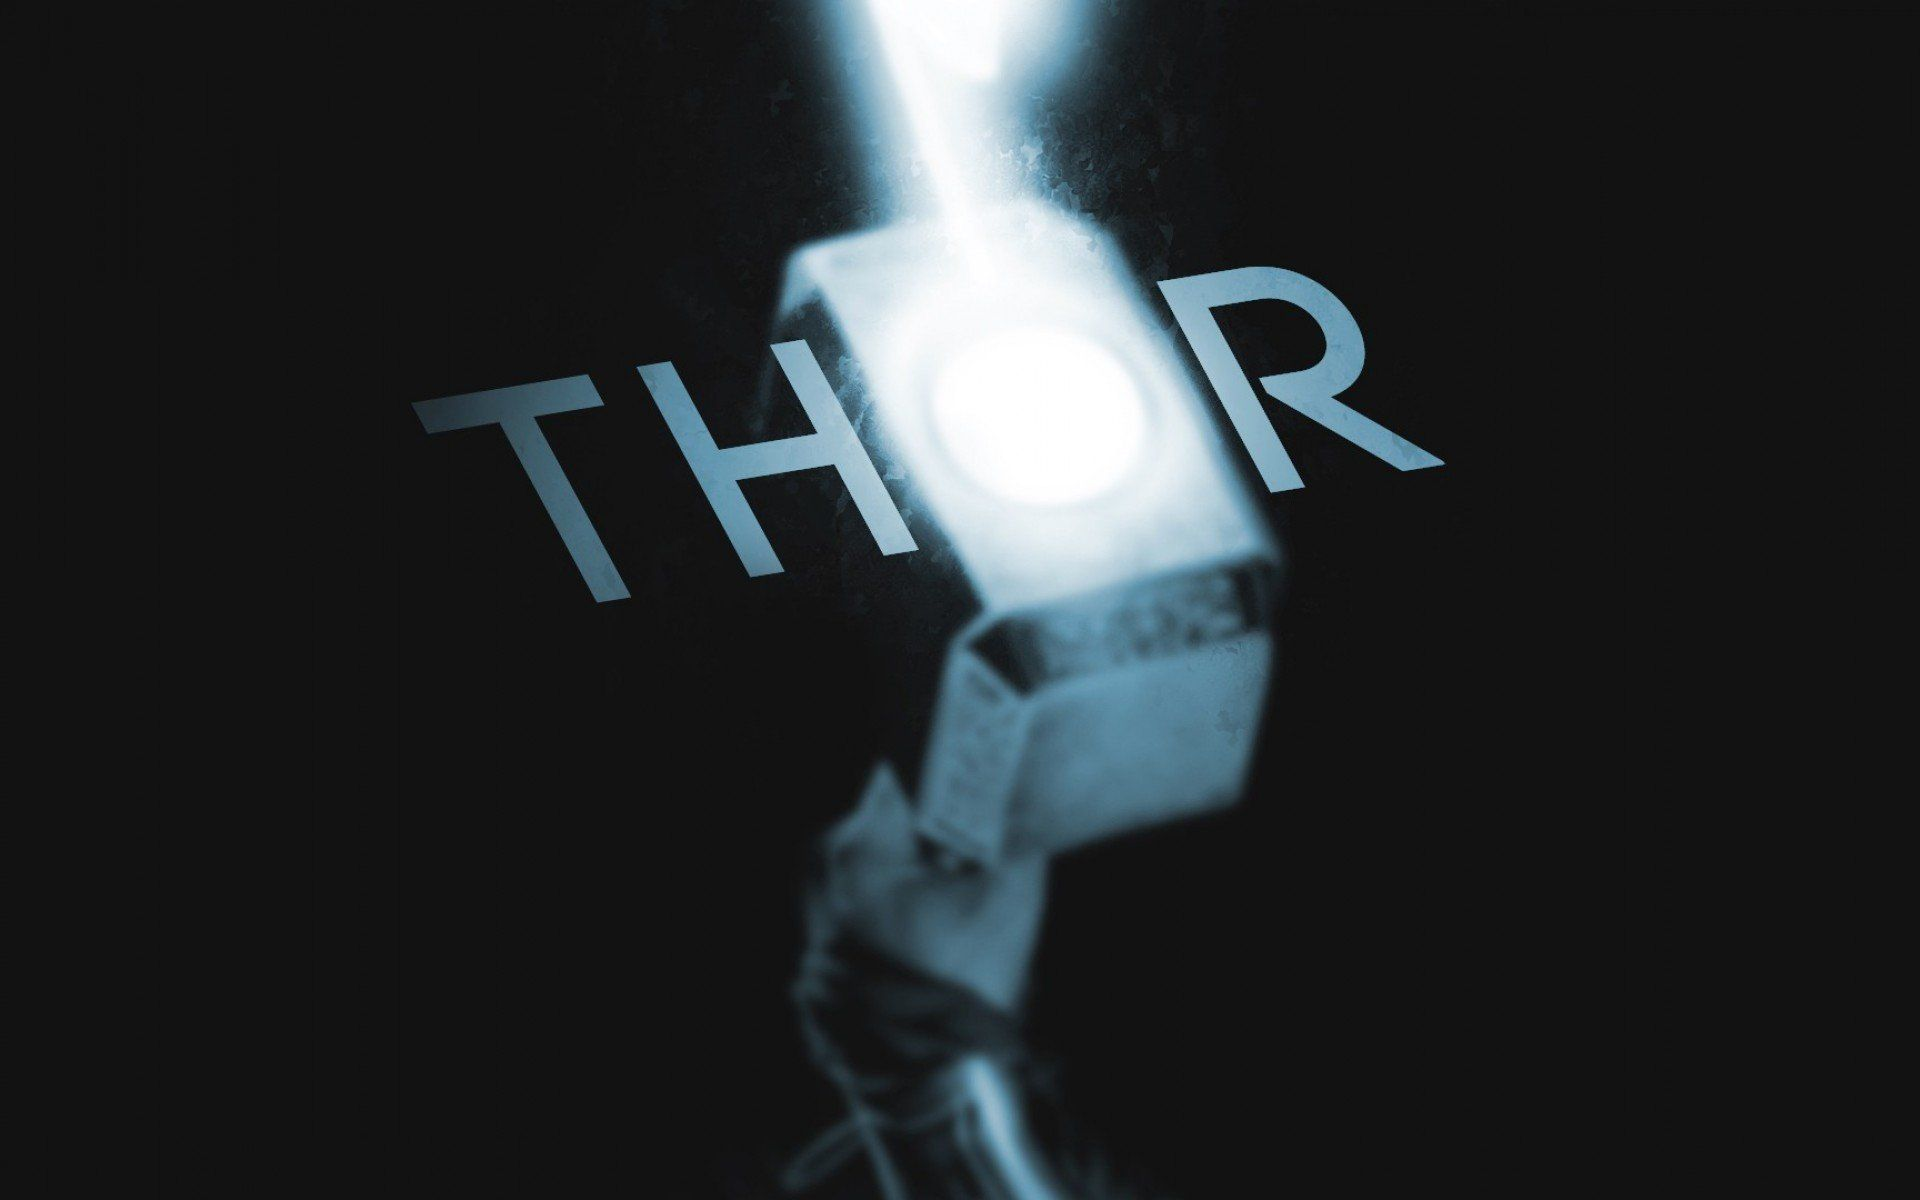 Thor laptop wallpapers top free thor laptop backgrounds wallpaperaccess - Thor hammer hd pics ...